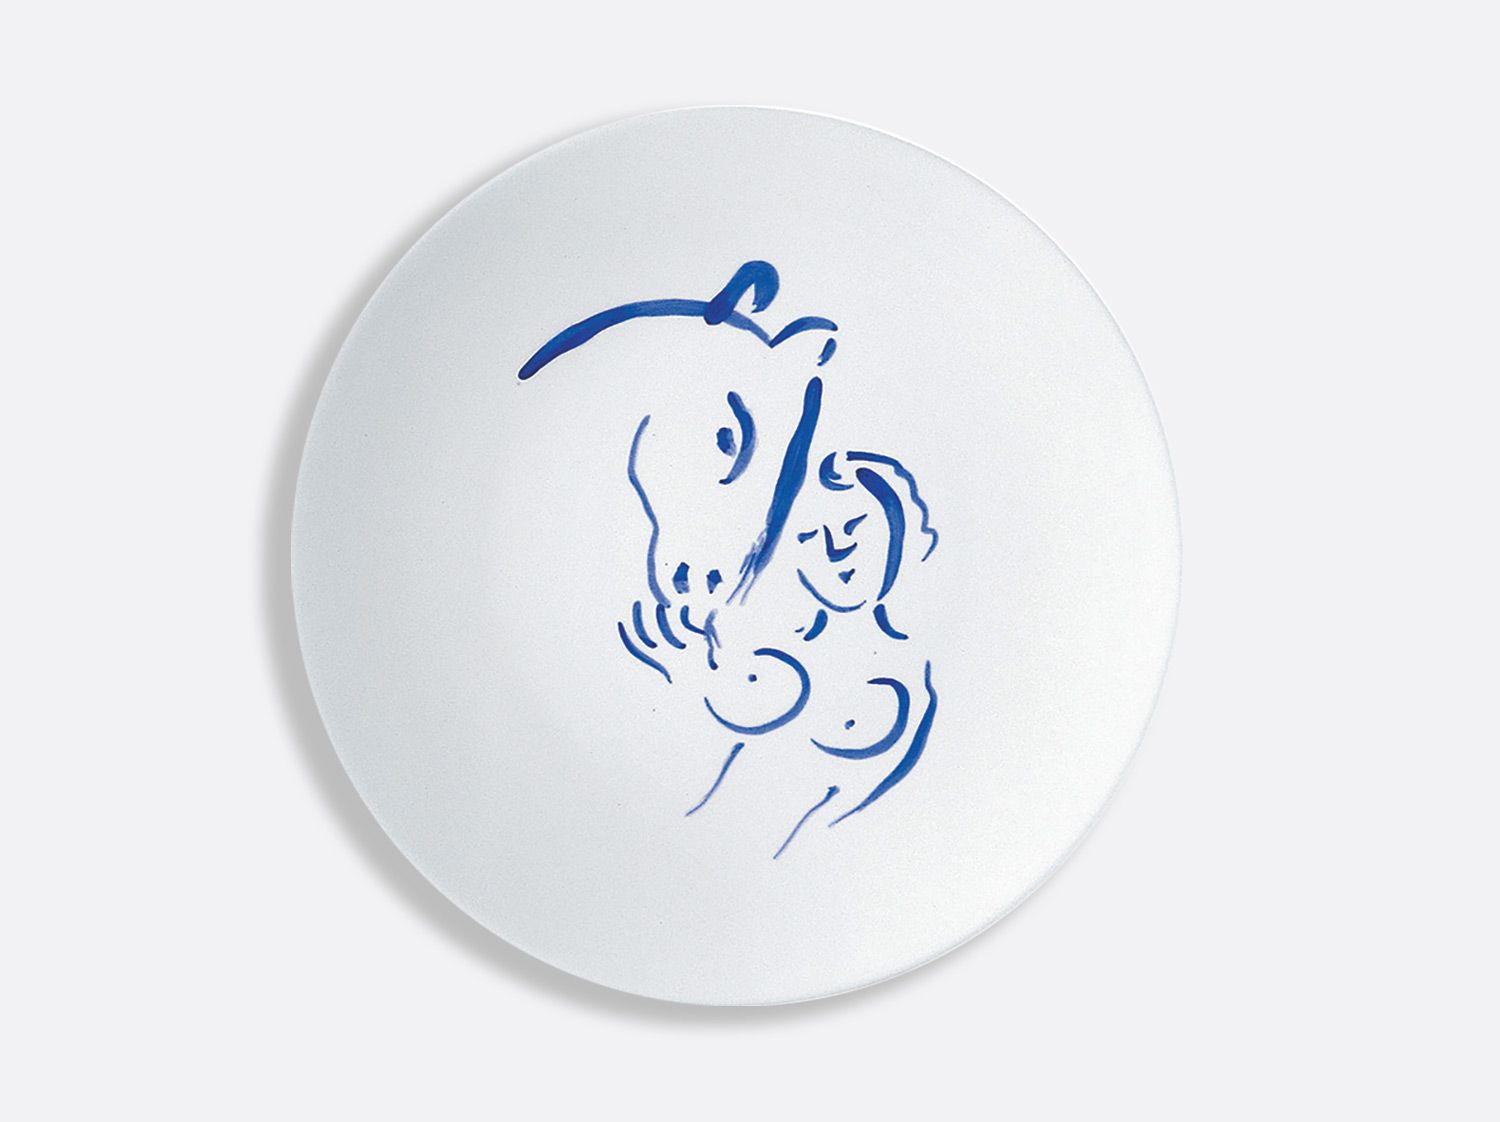 China Dinner plate nu et cheval 26 cm of the collection Pour ida | Bernardaud